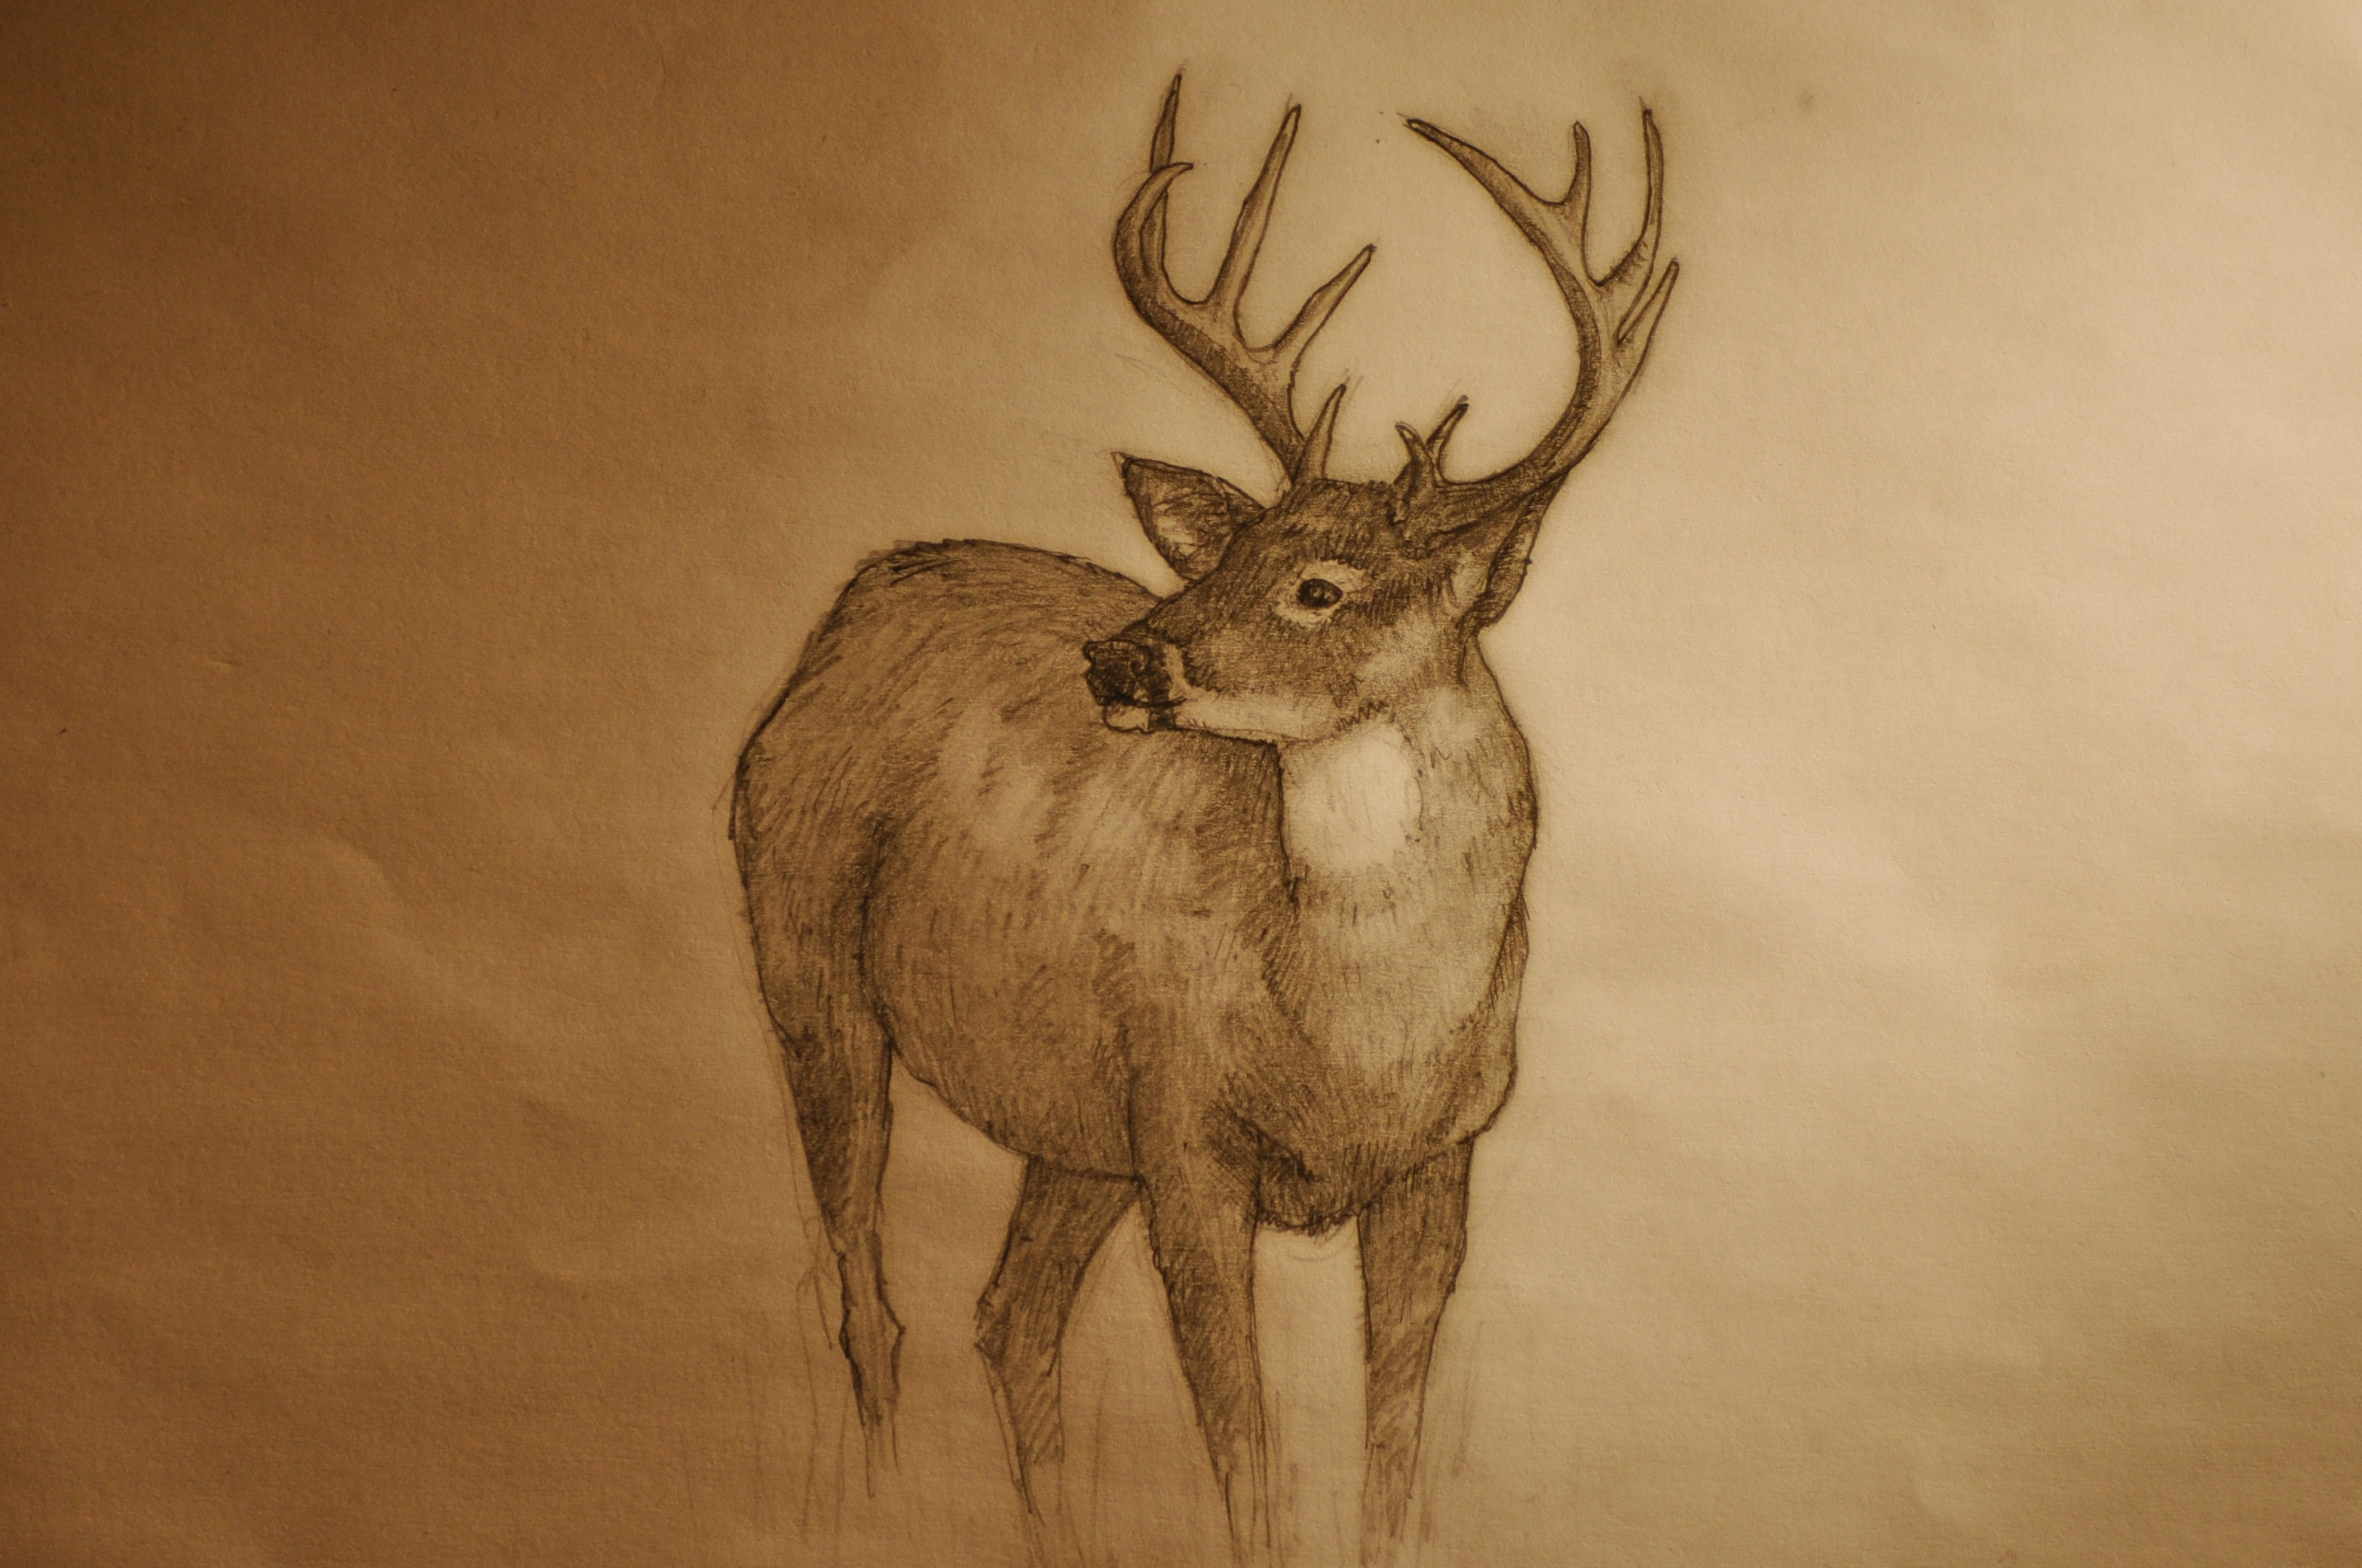 Line Drawings Of Animals Deer : Deer drawing at getdrawings.com free for personal use